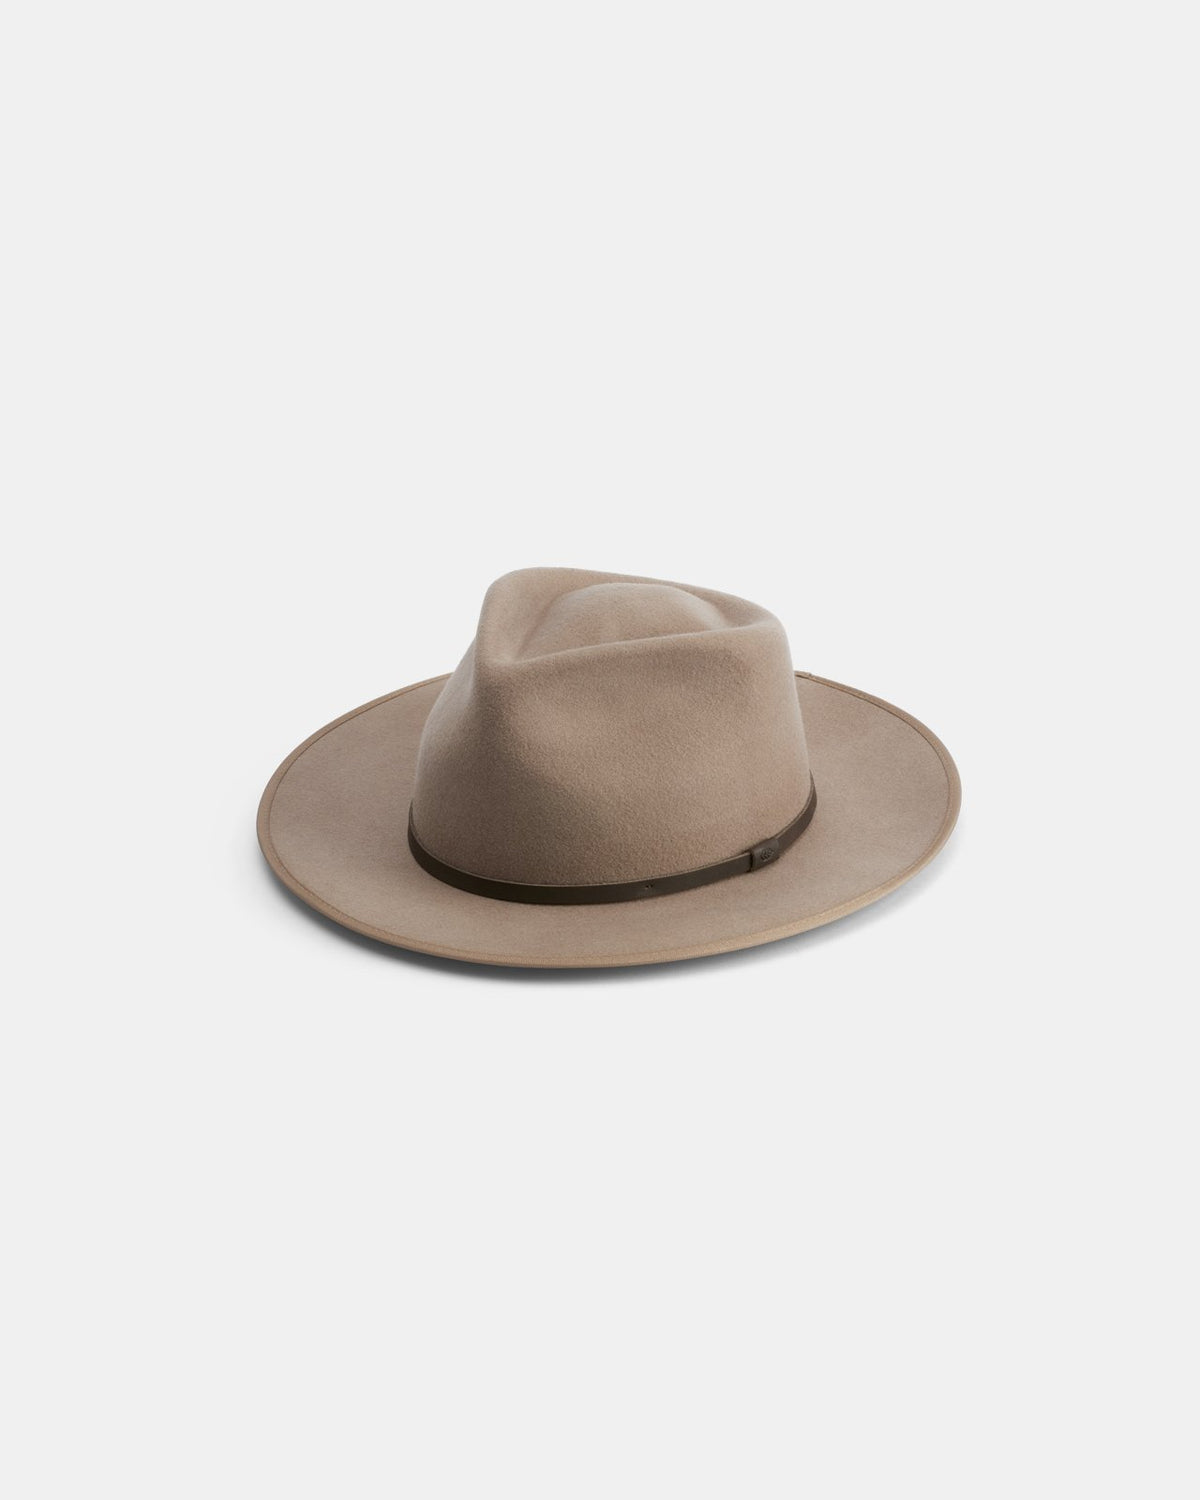 Will + Bear Calloway hat in fawn at stockroom kyneton